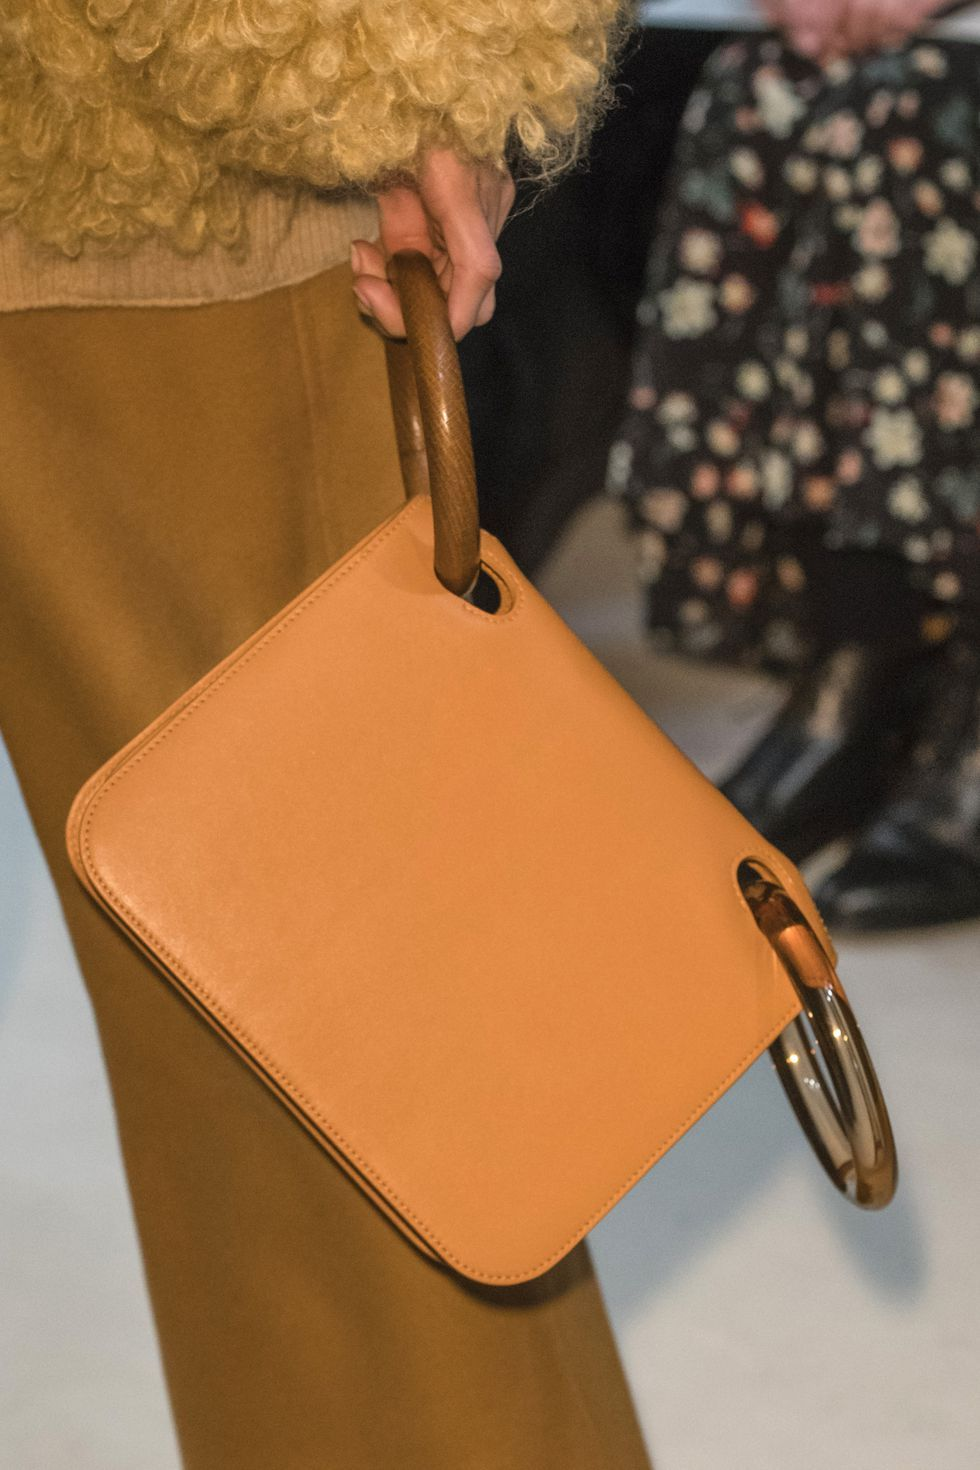 968bbb4179 Bag and Purse Trends Fall 2018 - Runway Bags Fall 2018